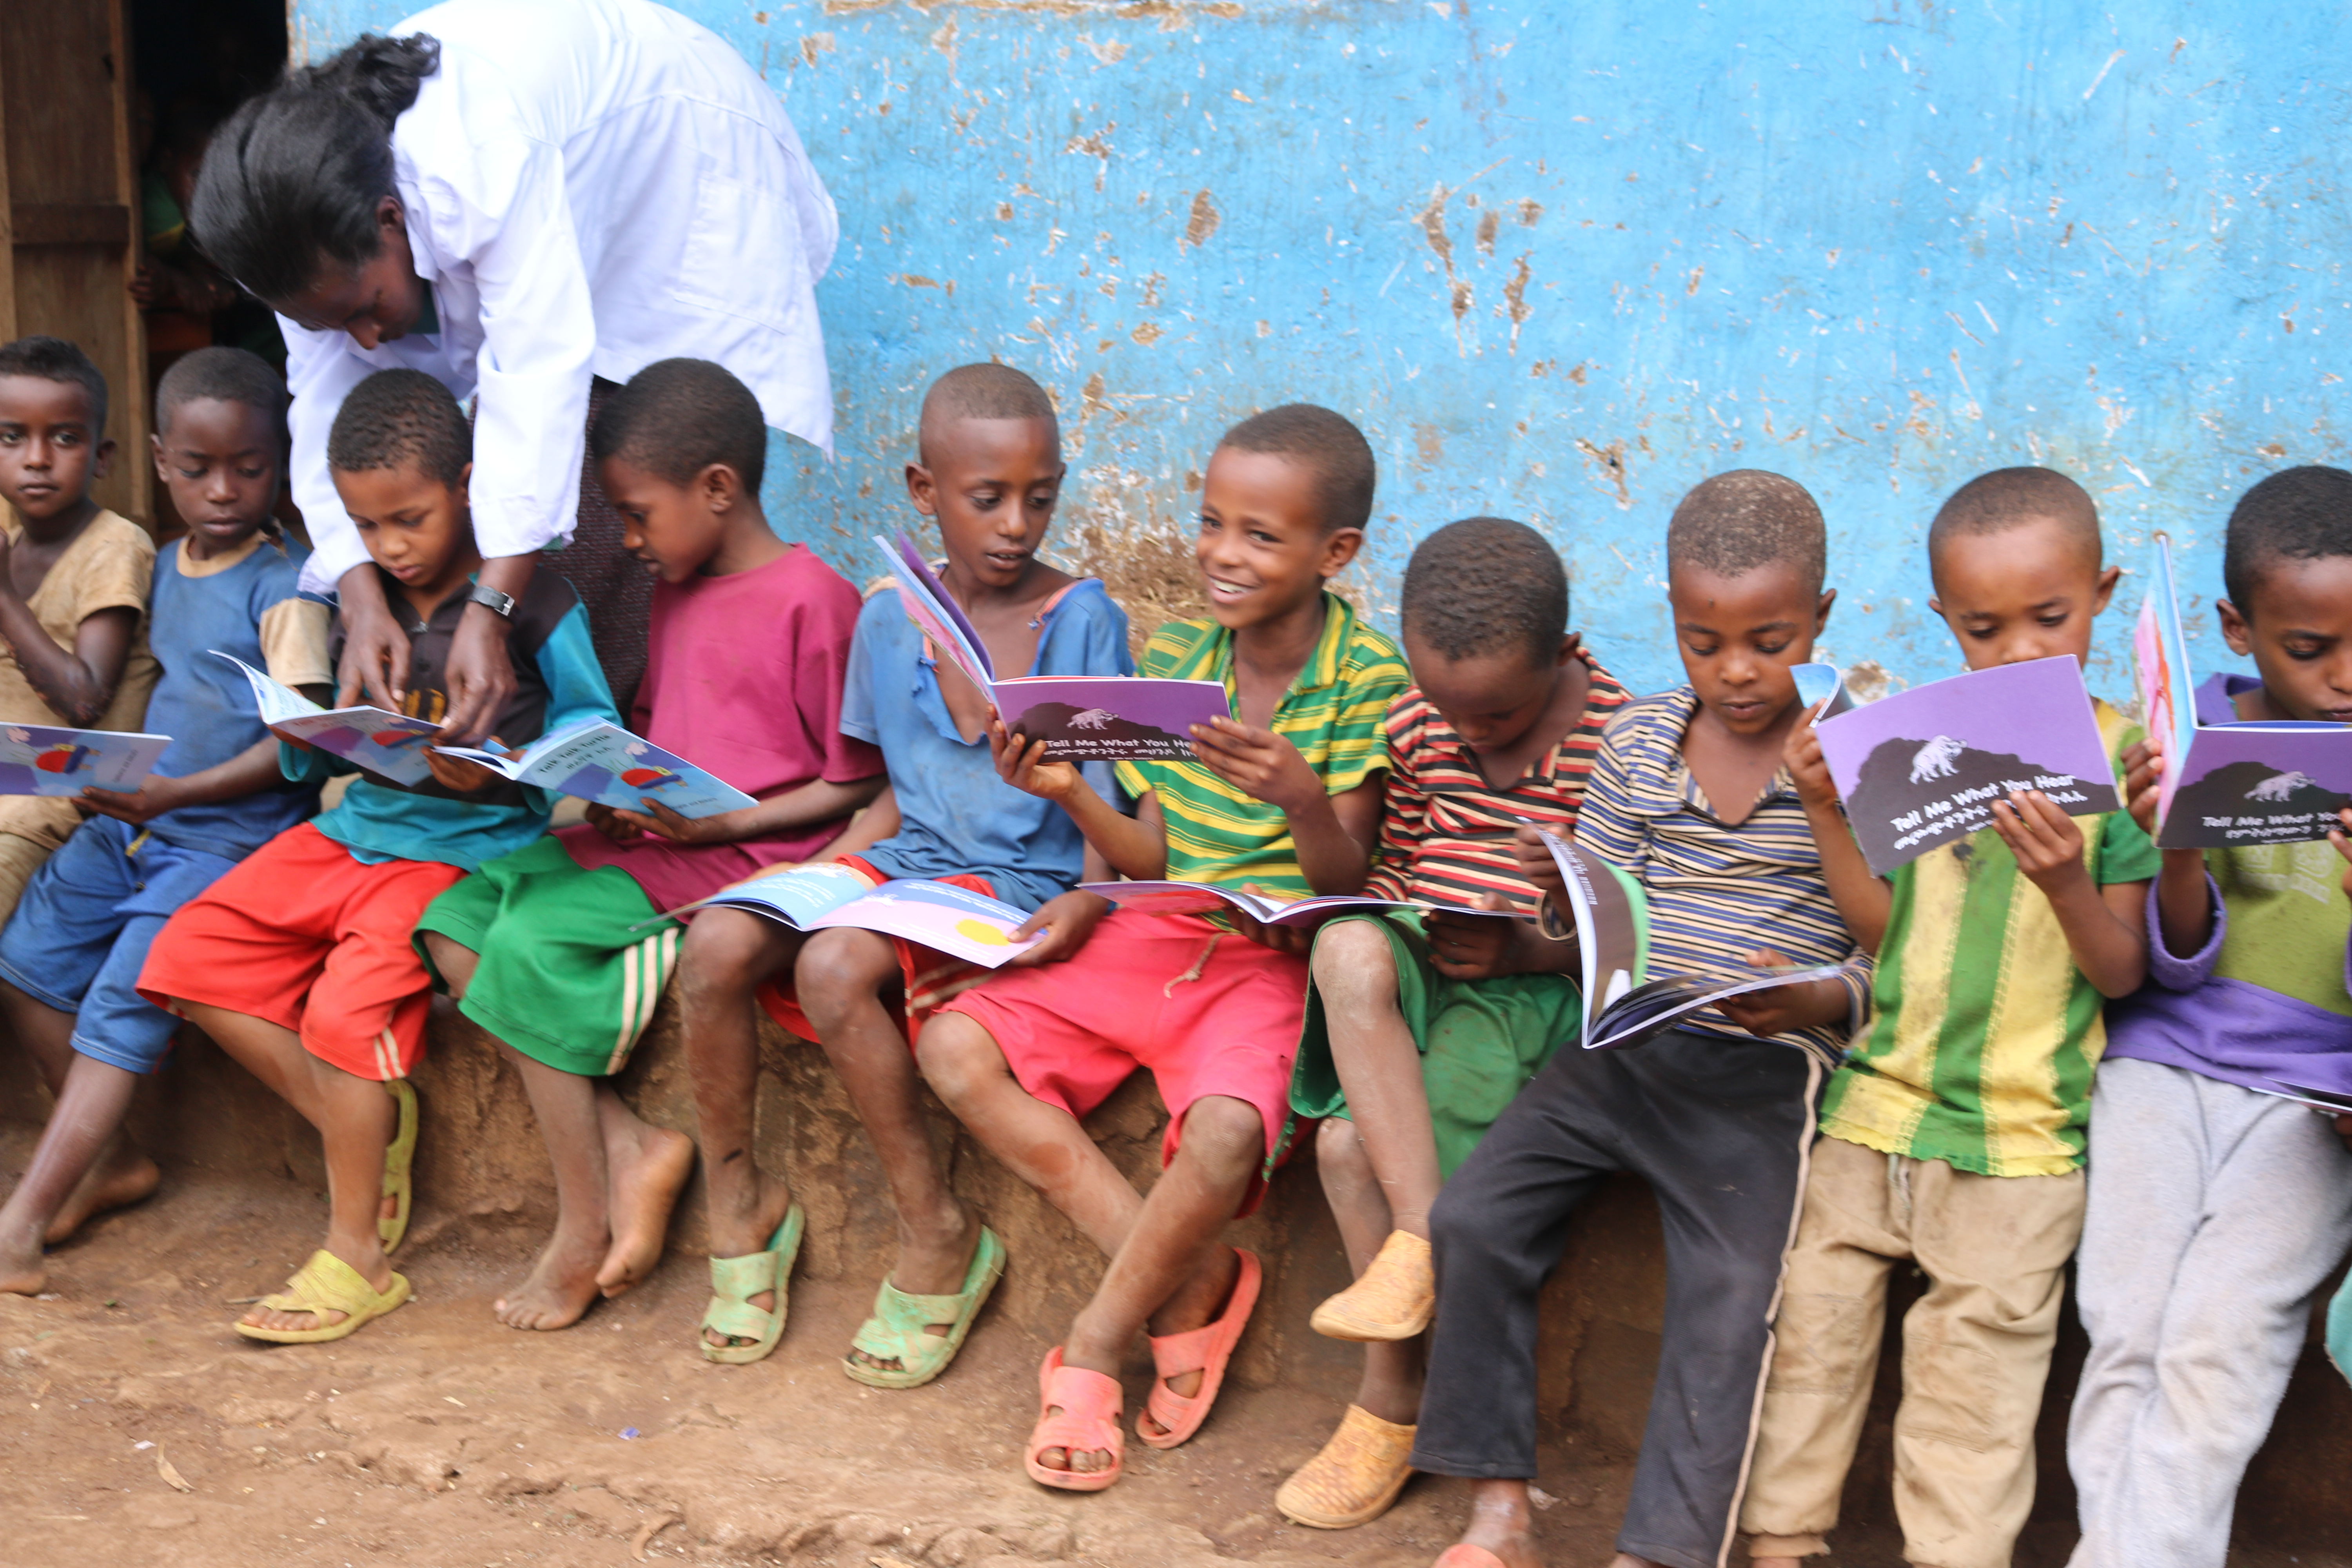 Children sitting outside on a sidewalk in Ethiopia with their science books.